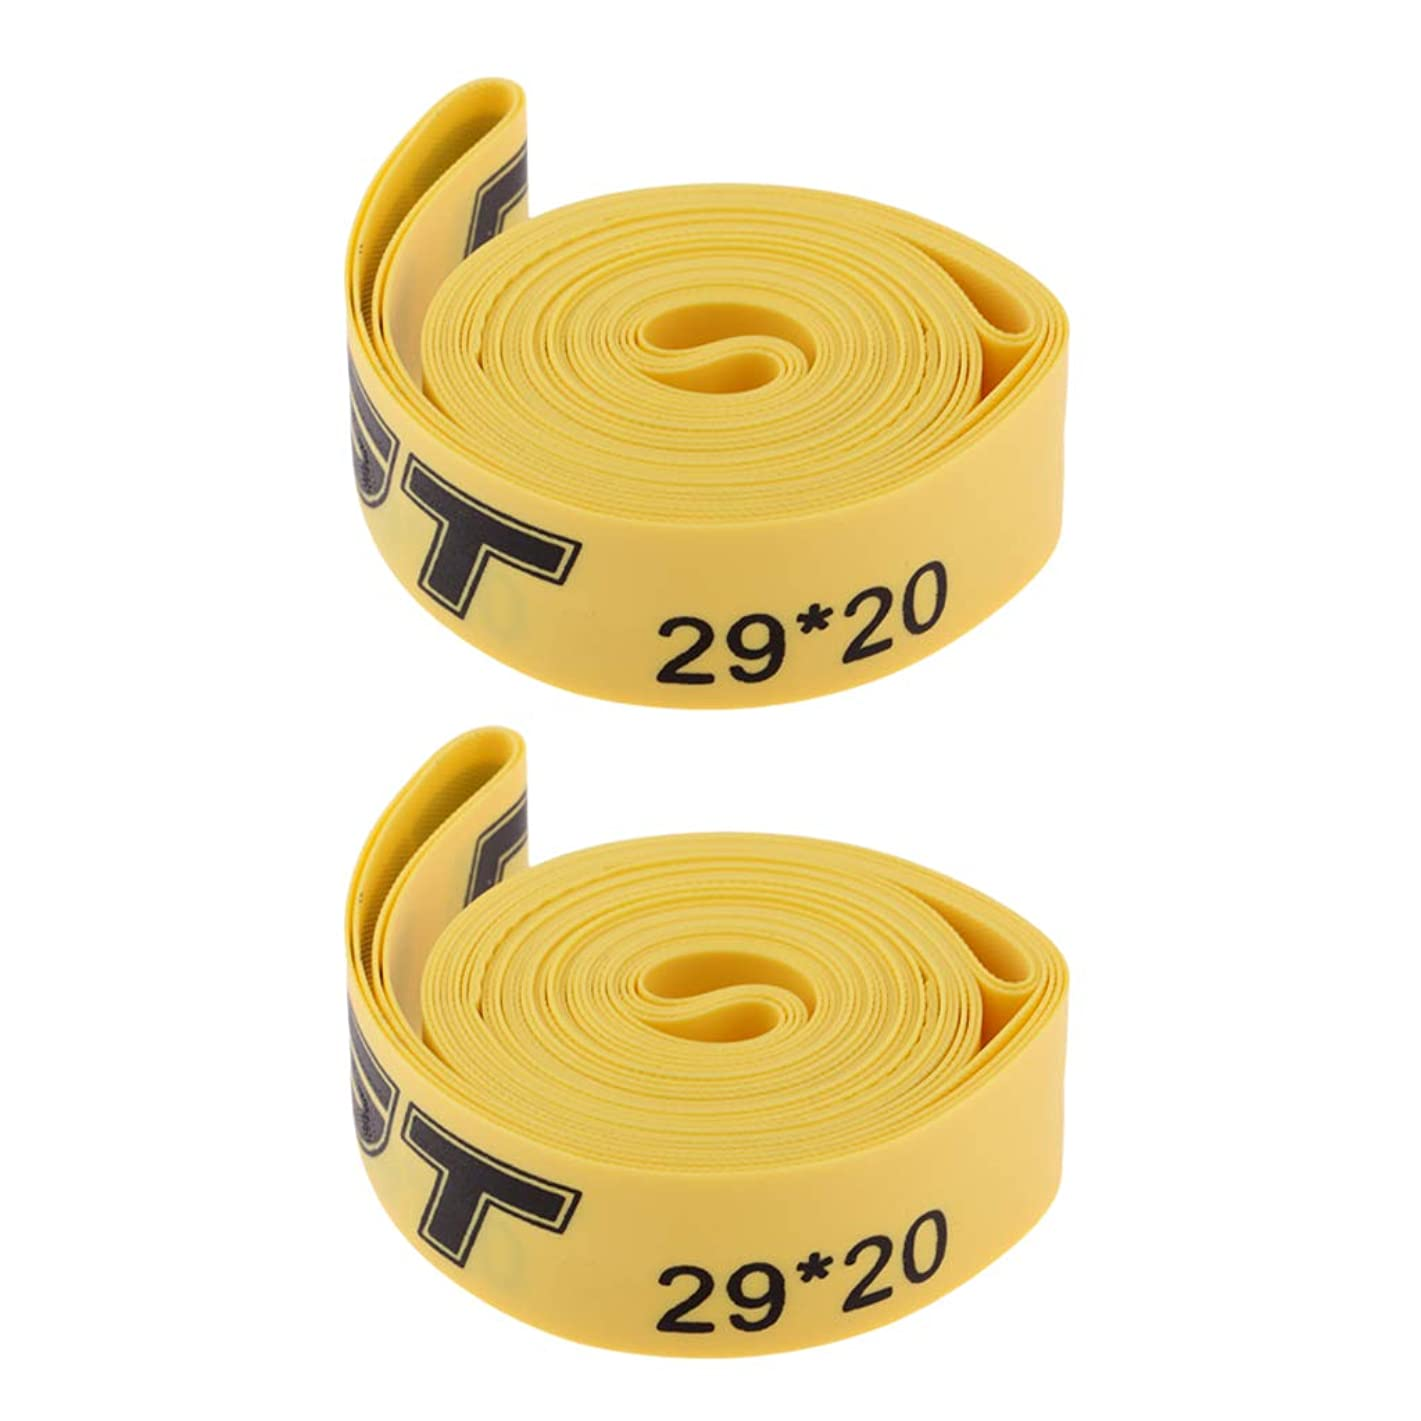 DYNWAVE Pack of 2, Mountain Bike Tire Liner/Road Bicycle Tire Protector - Anti-Puncture - Compatible with 26/27.5/29 inch or 700c Cycle - Yellow